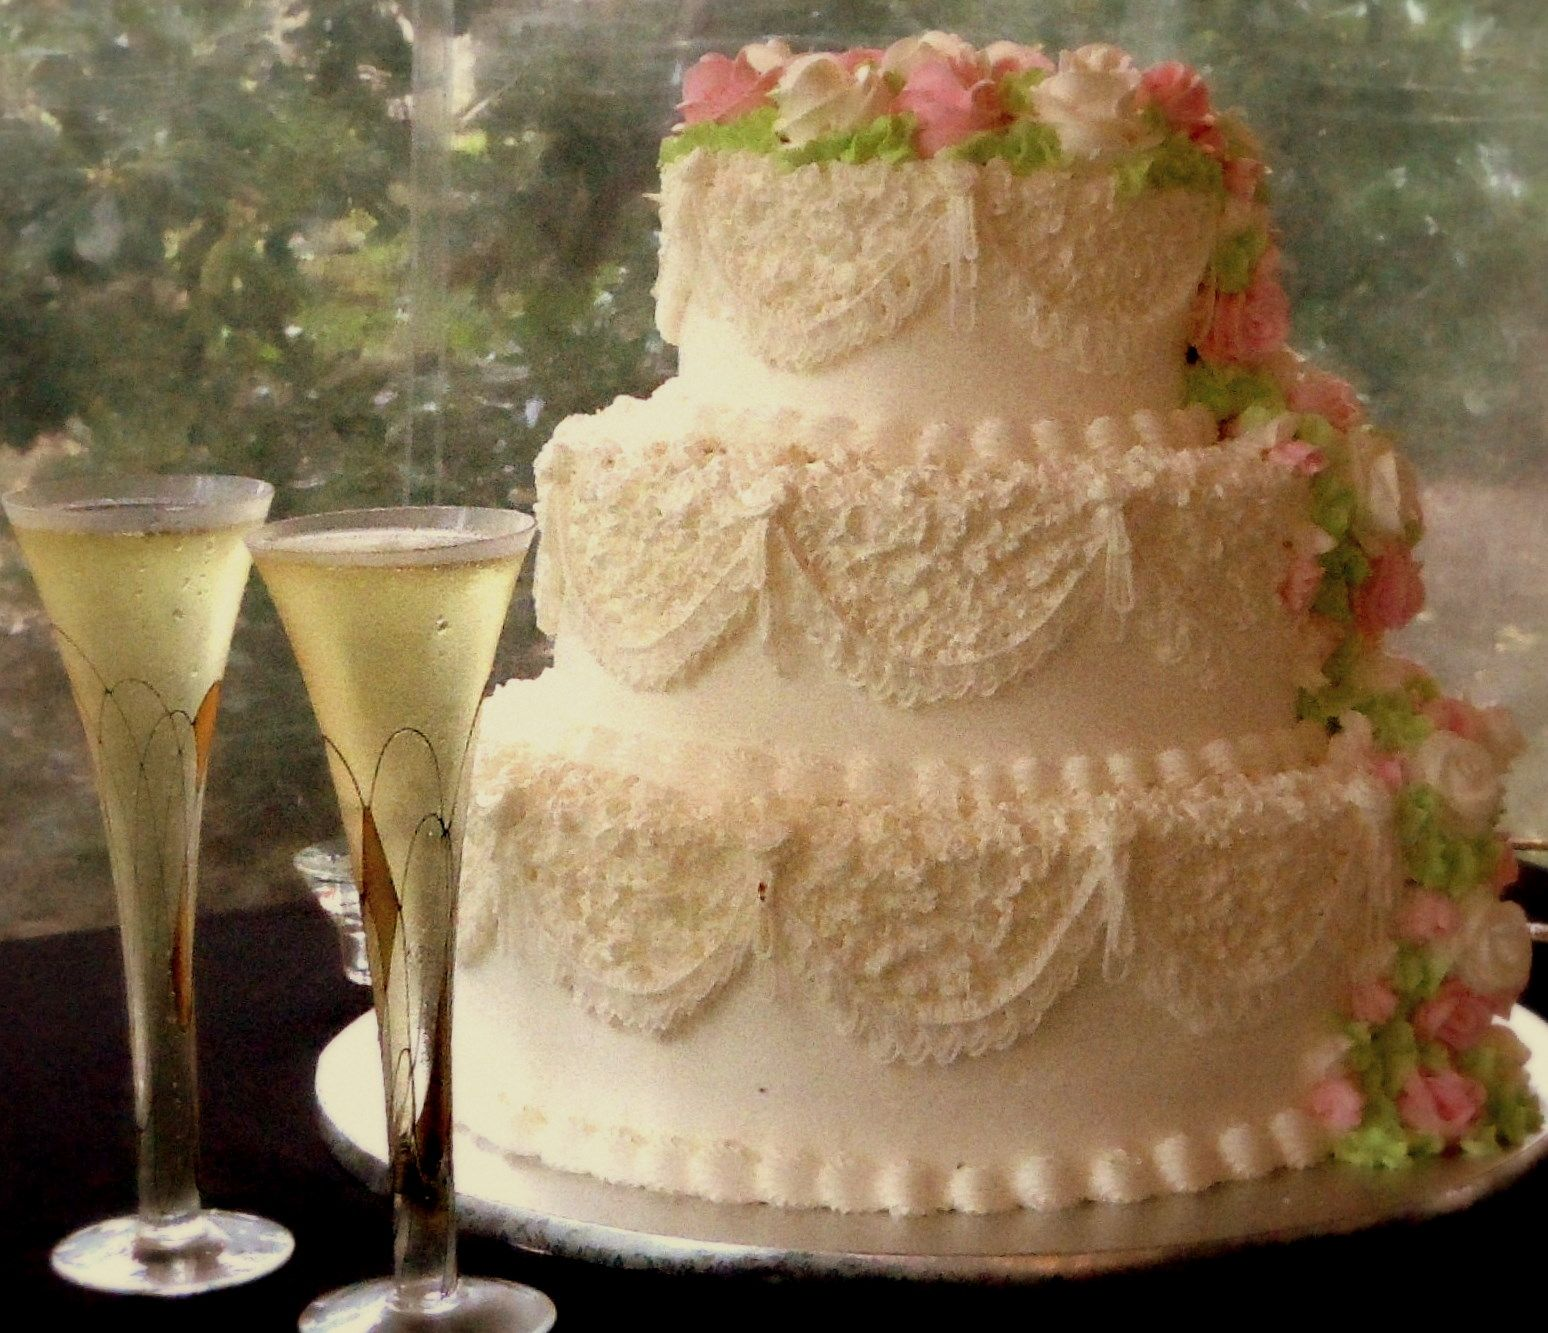 Publix Wedding Desserts: Beautiful Wedding Cake With Roses By Publix Bakery At Gov